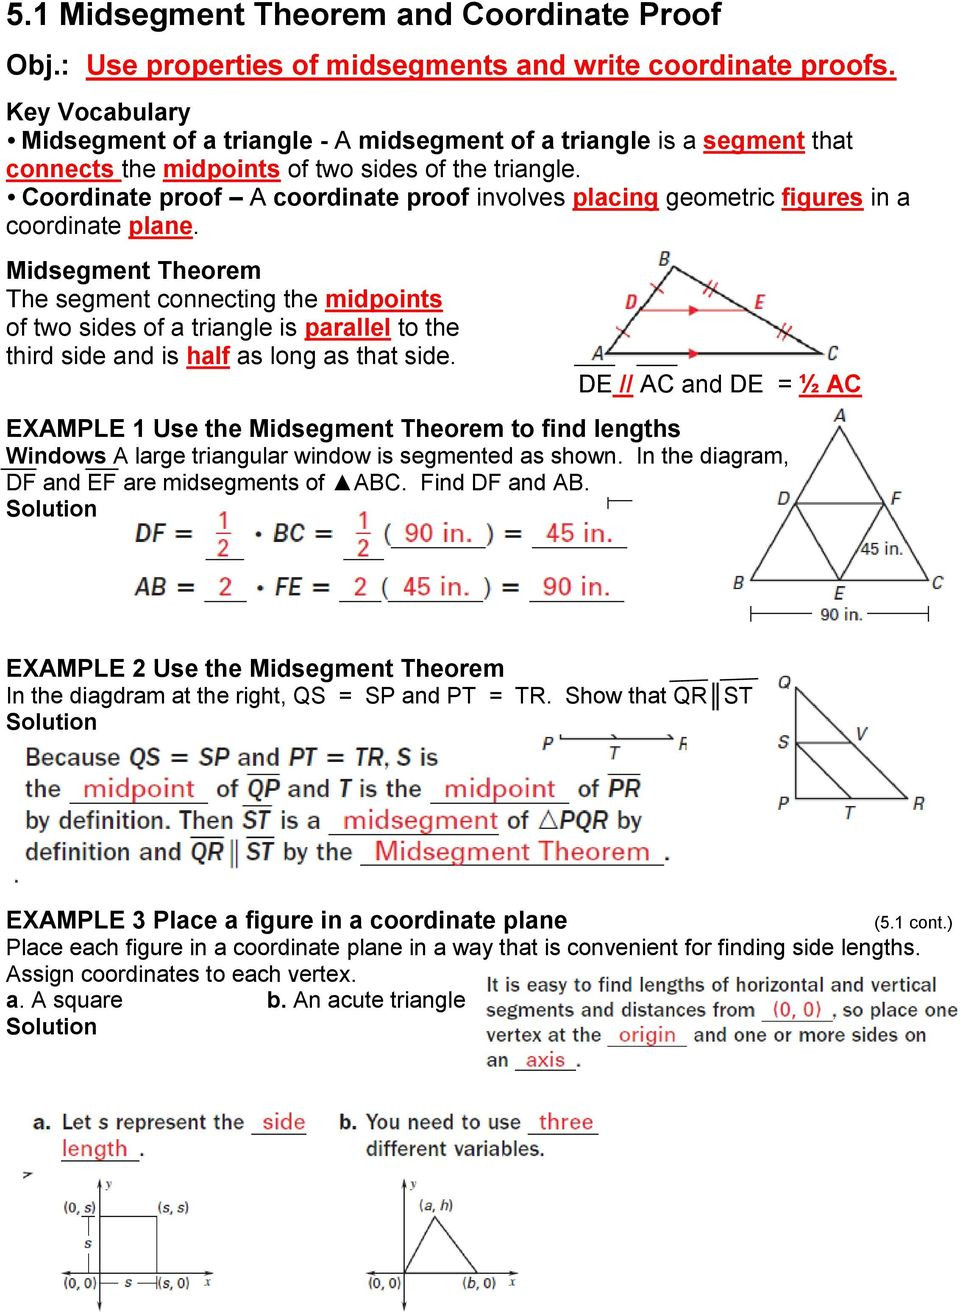 Midsegment theorem Worksheet Answer Key 5 1 Midsegment theorem and Coordinate Proof Pdf Free Download